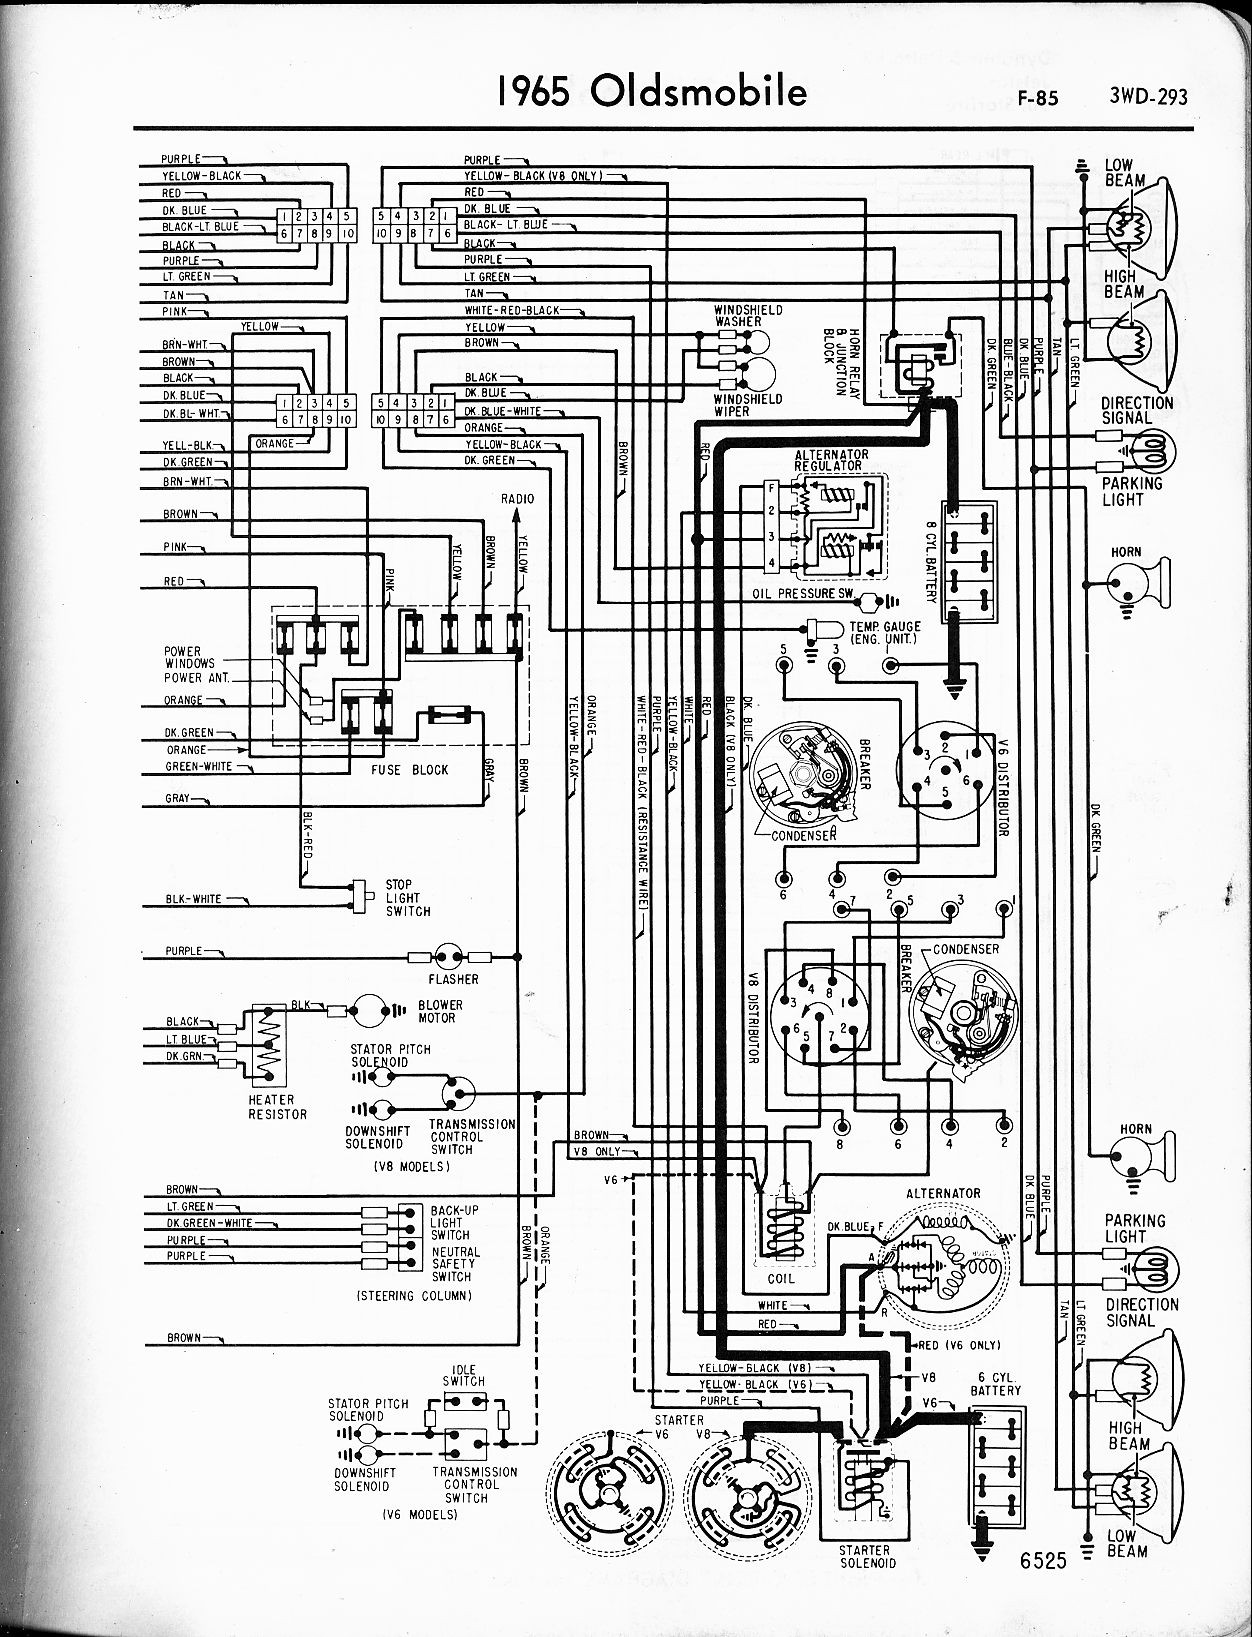 1969 Oldsmobile Wiring Diagram Wire Center 1998 Diagrams 1967 Firebird Pontiac Rh Detoxicrecenze Com 1949